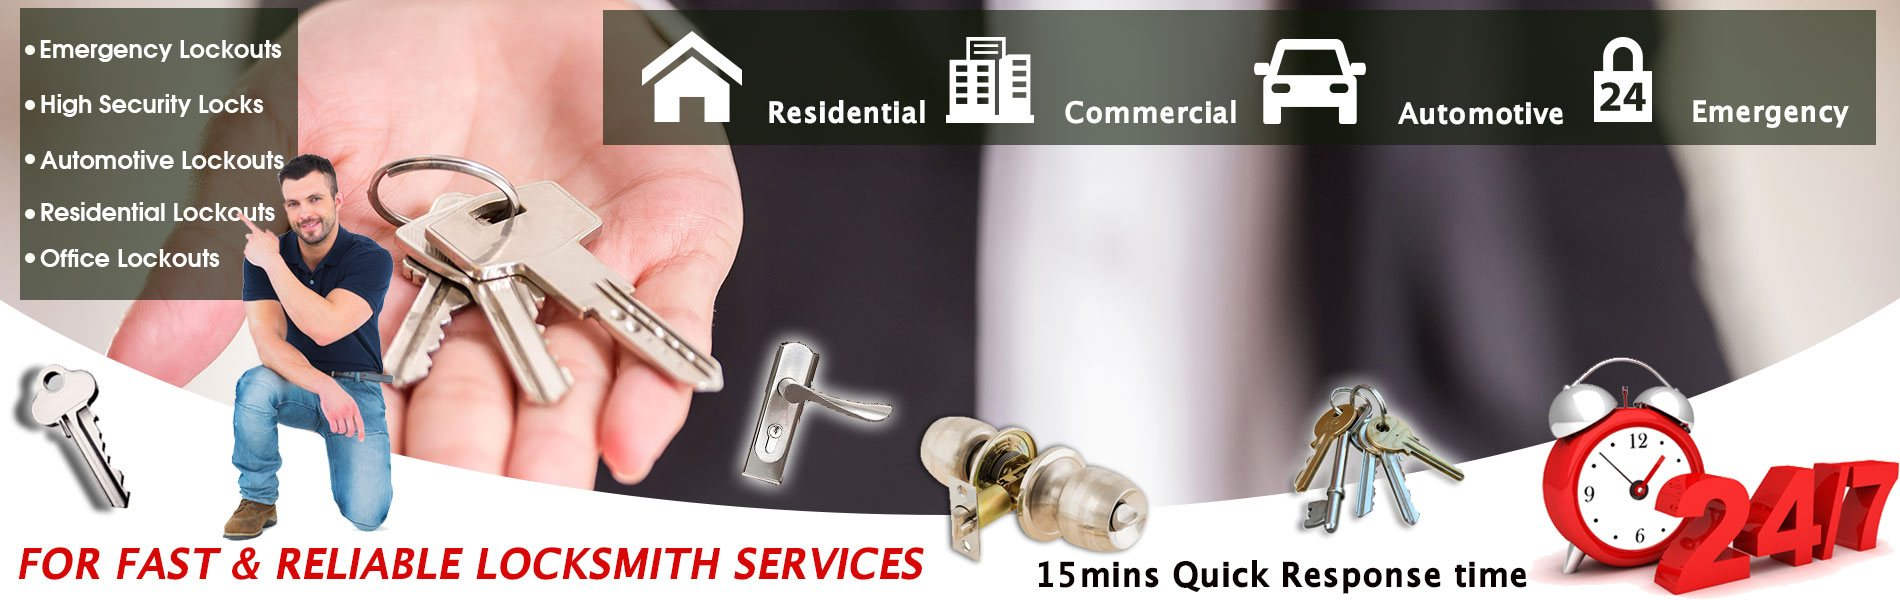 Village Locksmith Store South San Francisco, CA 650-946-3224